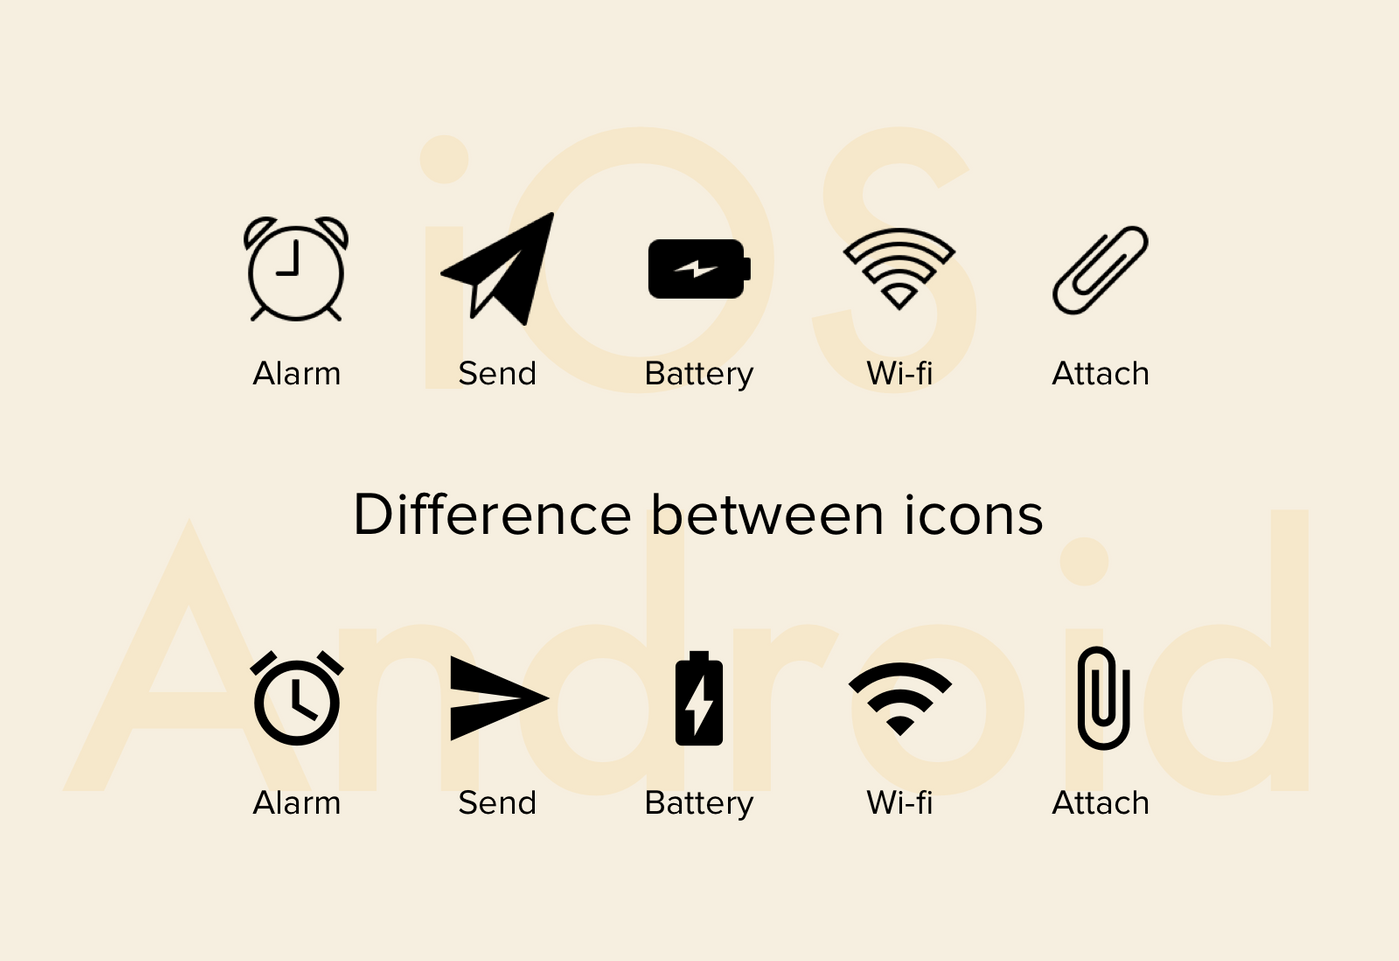 Comparison of icons on iOS and Android